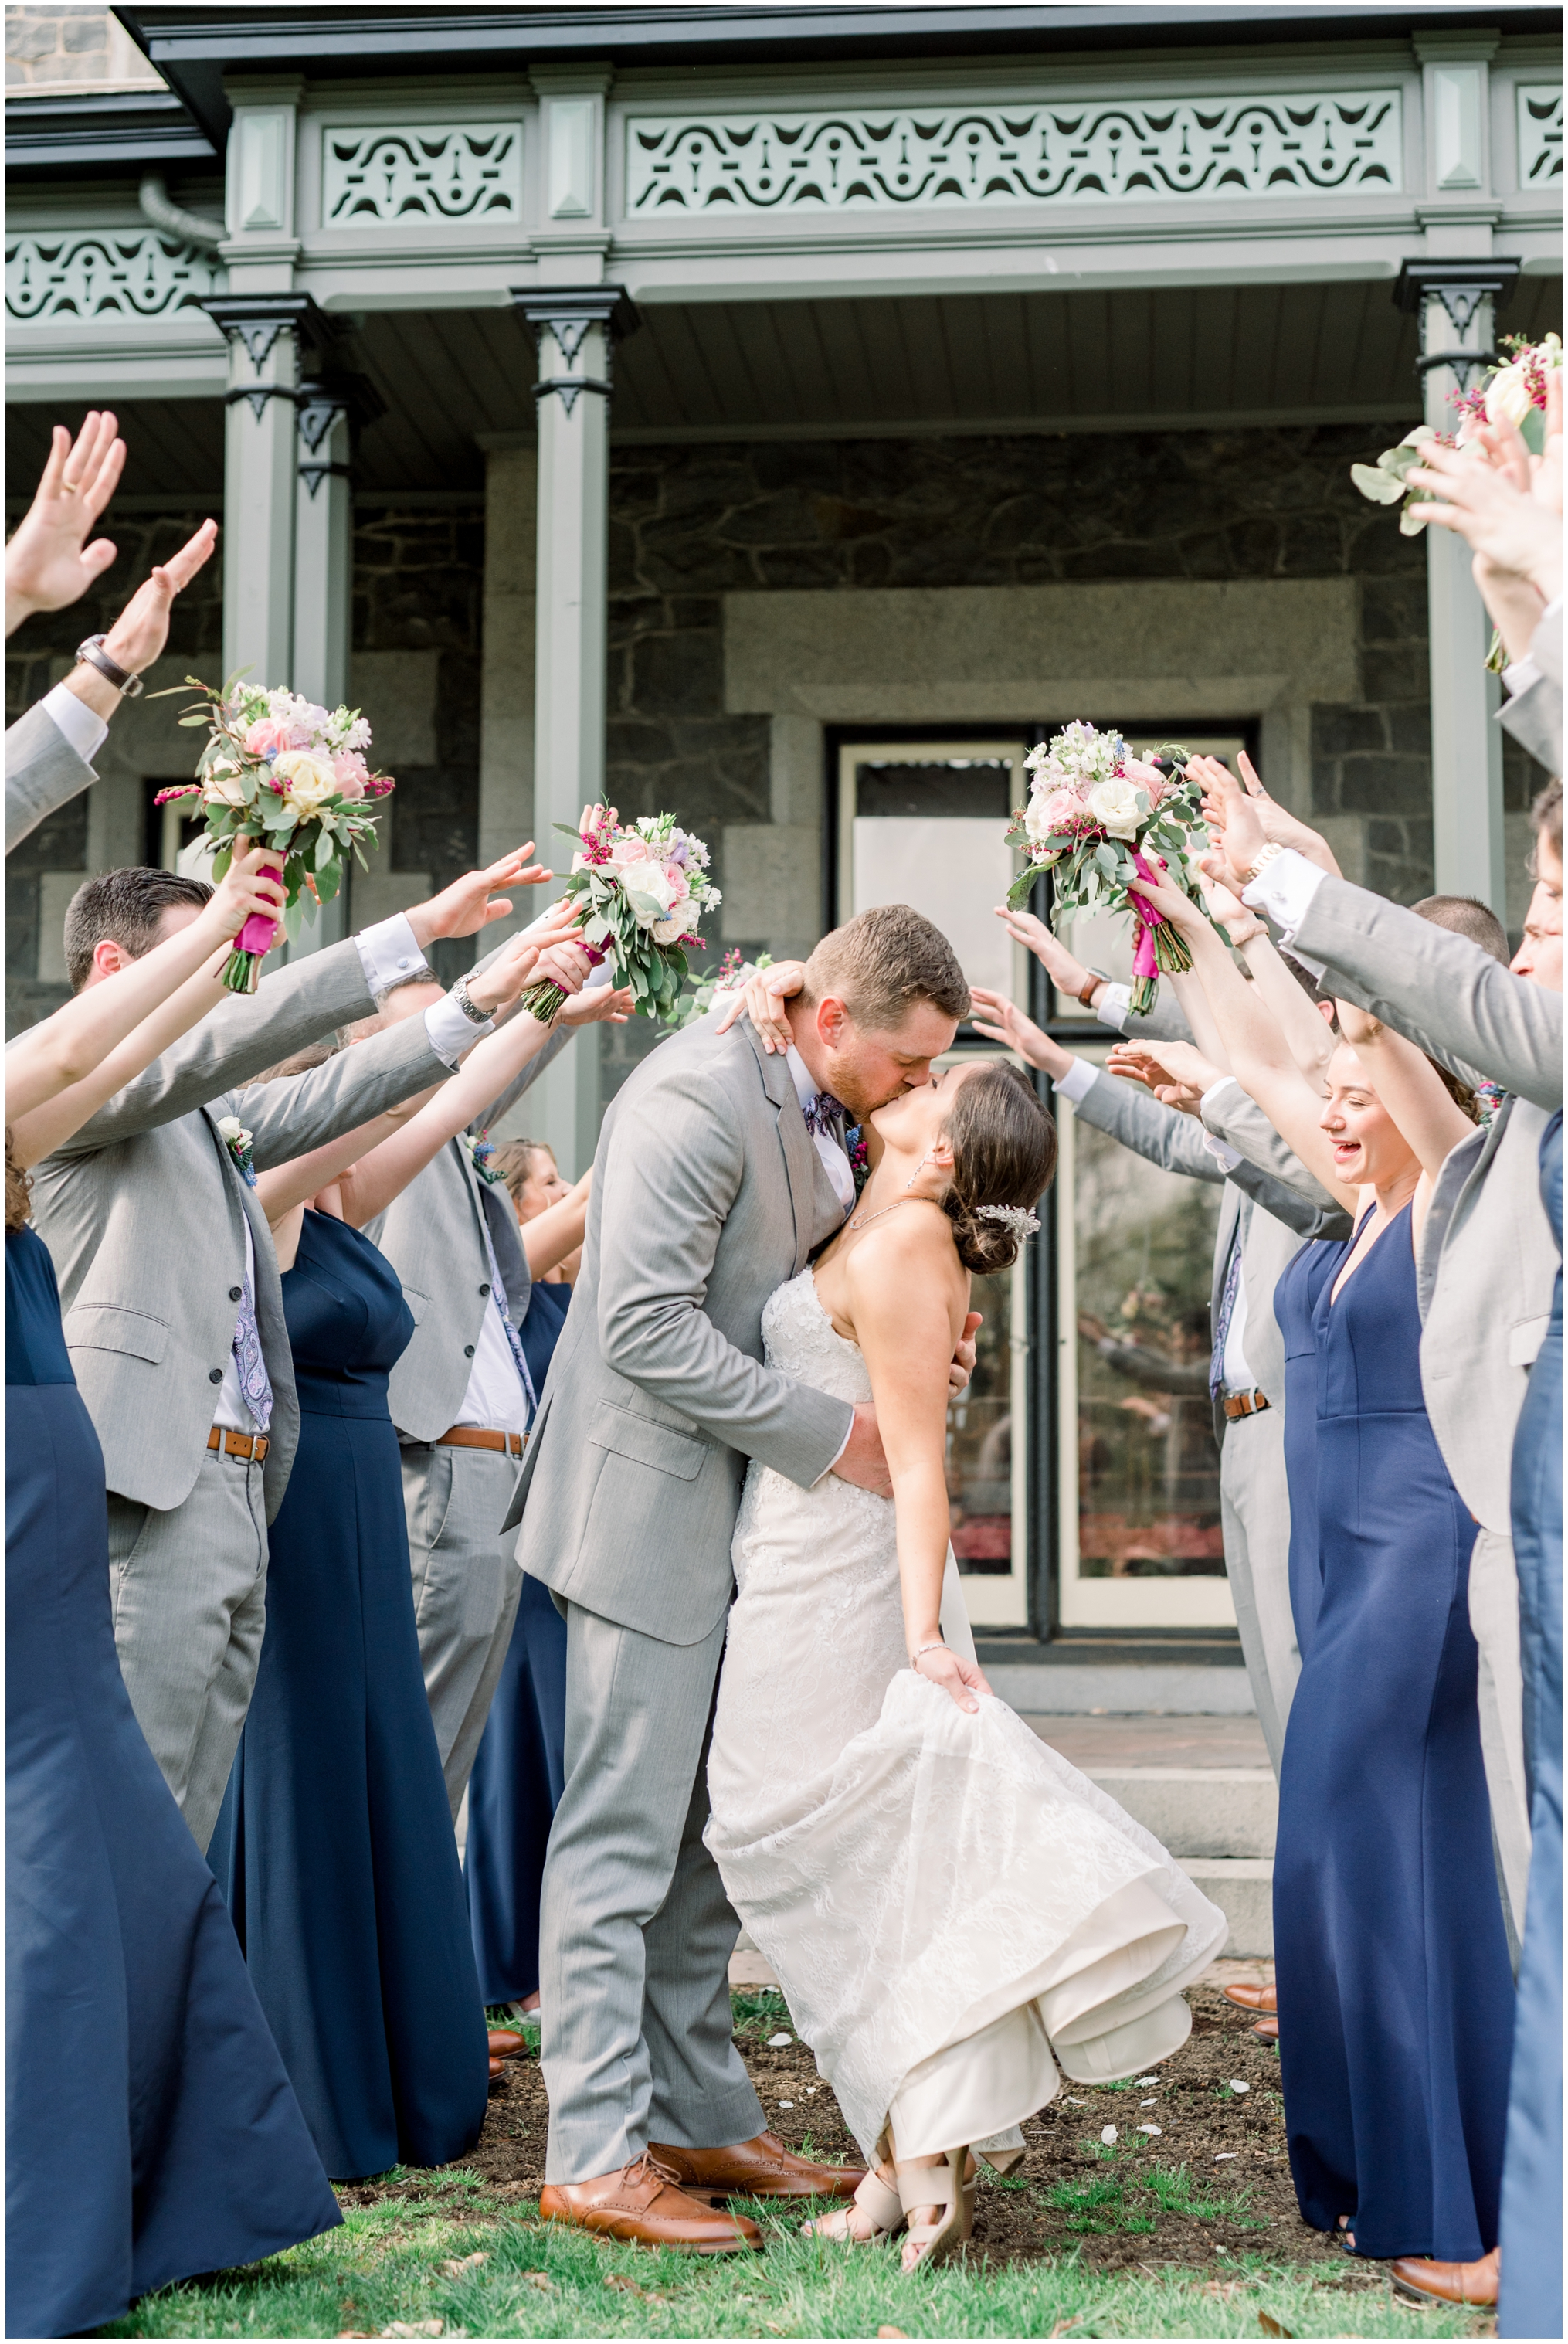 Krista Brackin Photography | April Wedding at The Carriage House at Rockwood Park_0066.jpg